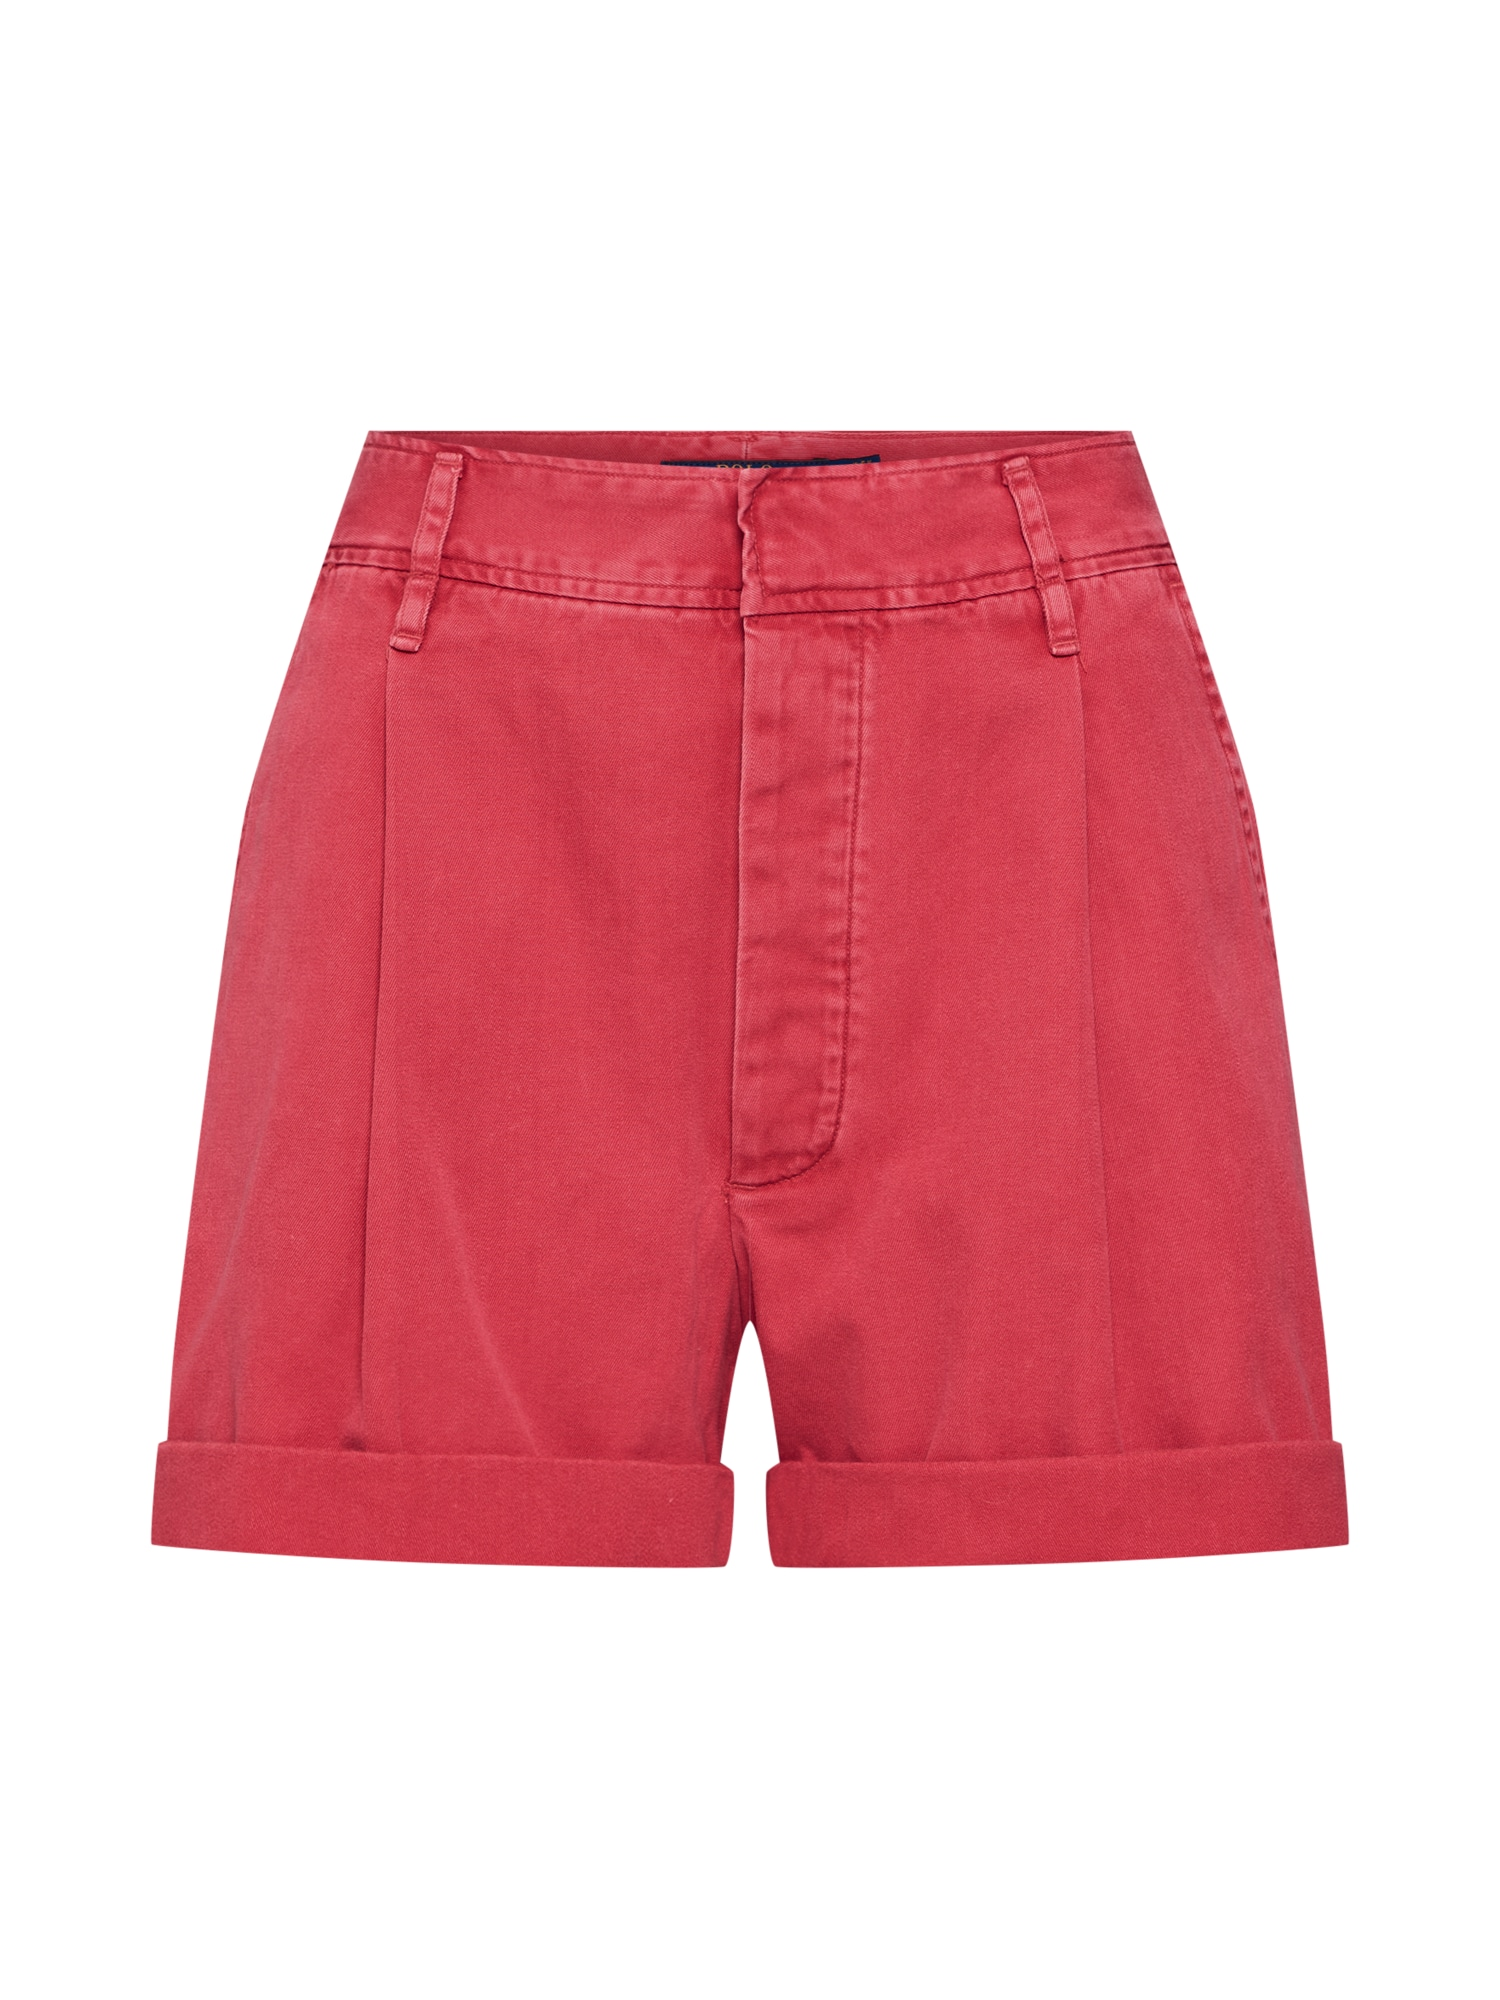 Kalhoty RELAXED pink POLO RALPH LAUREN